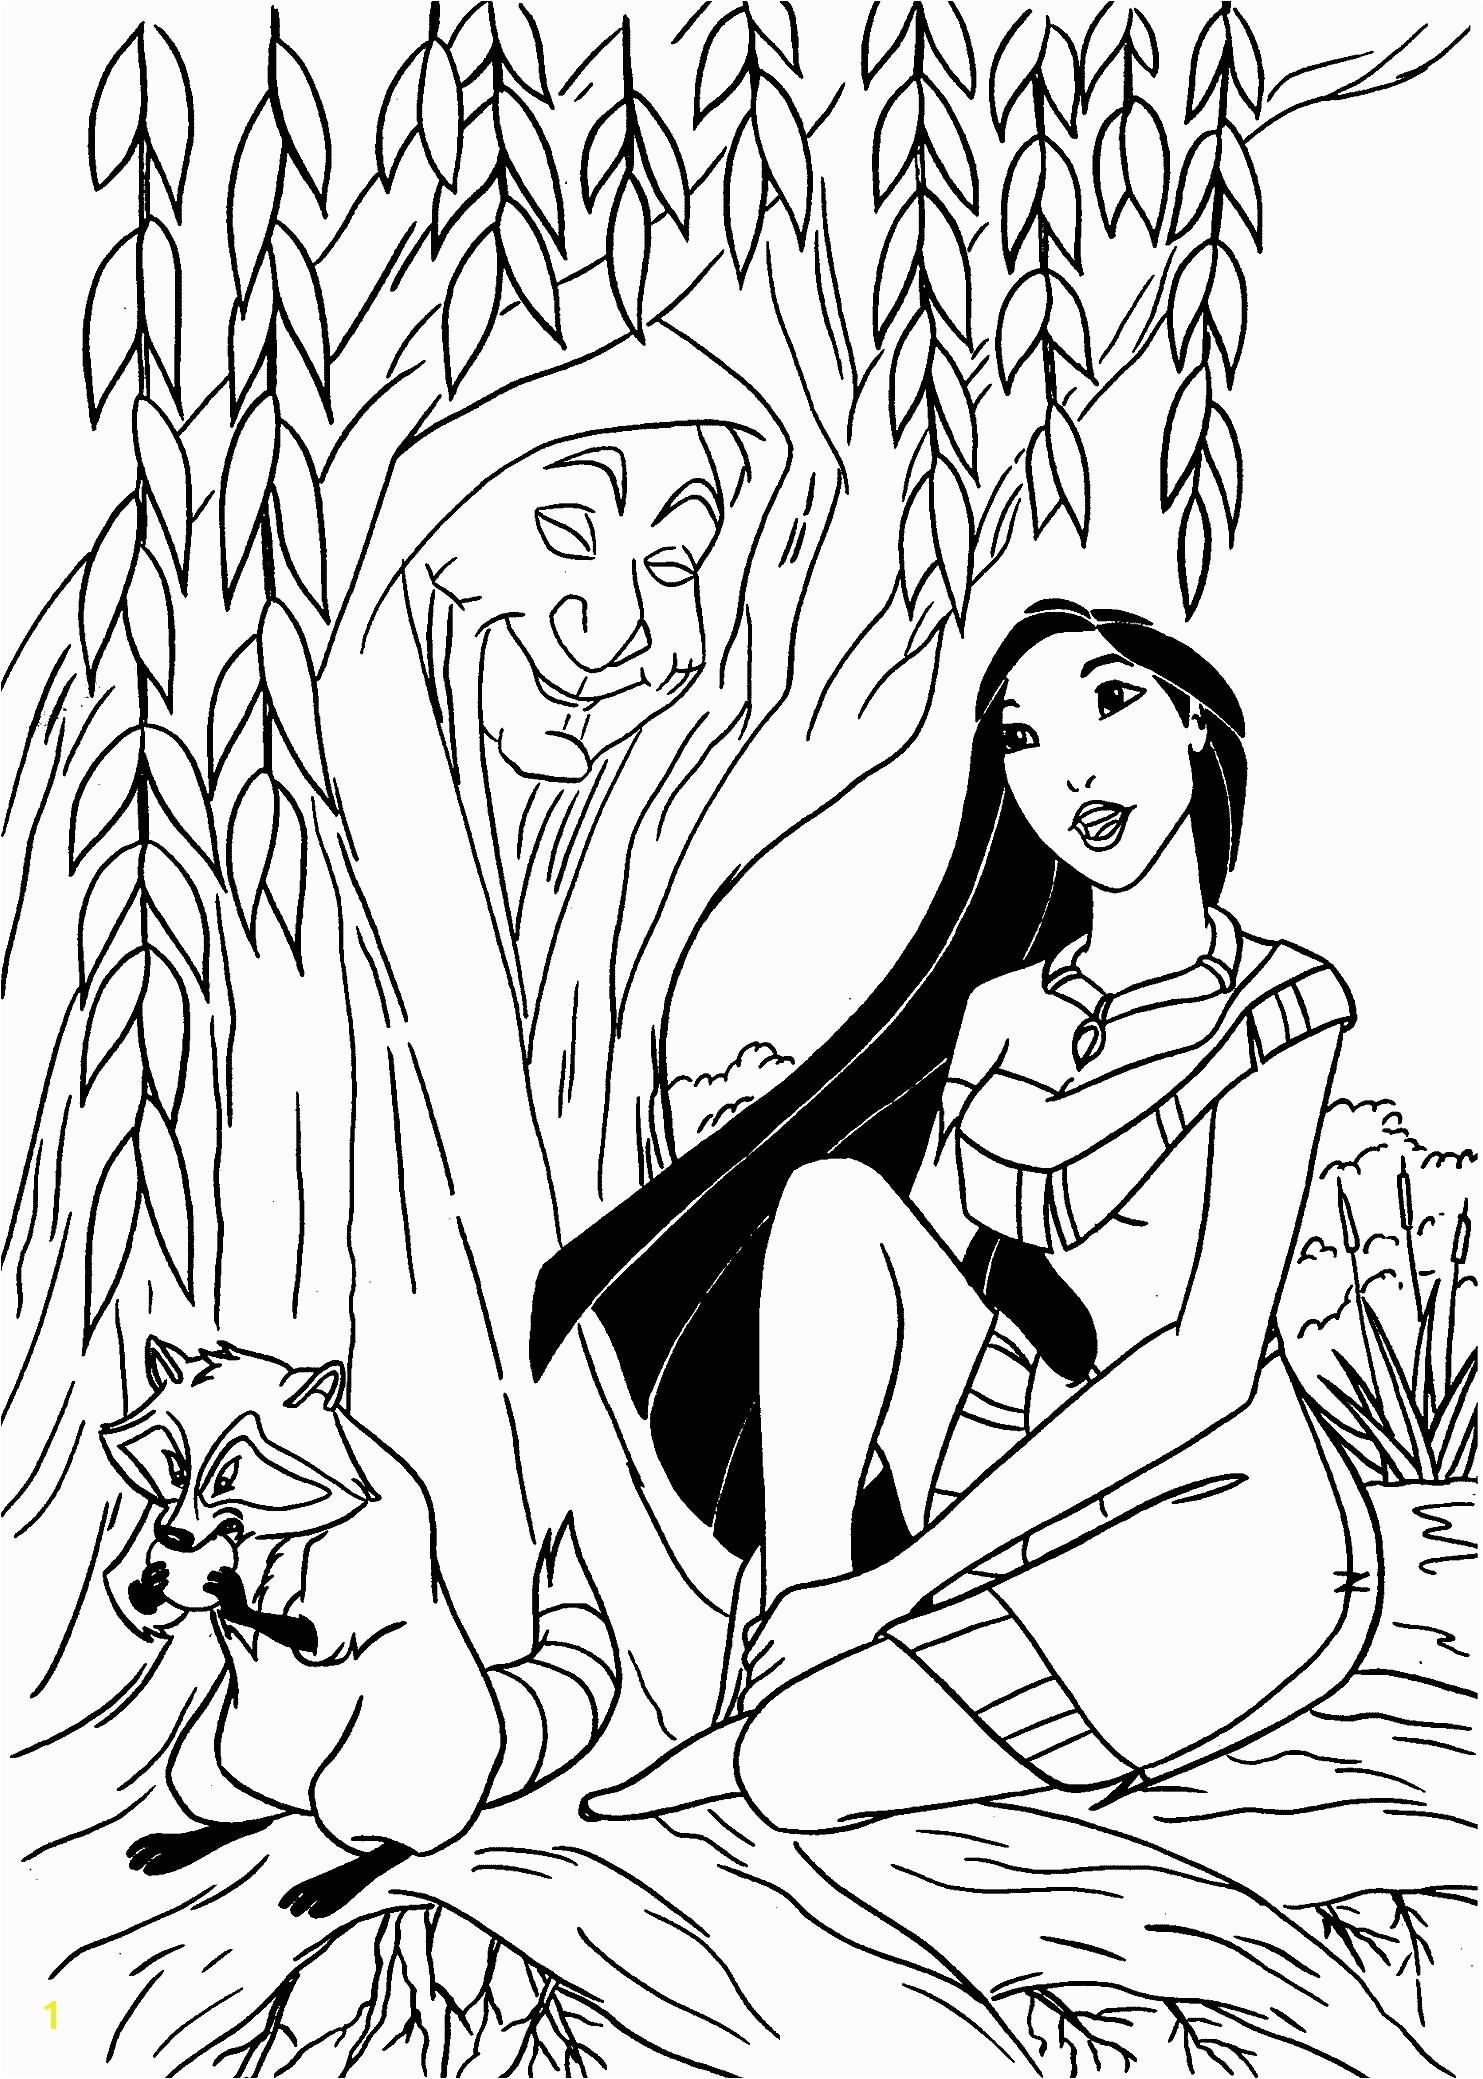 Cool Pocahontas Coloring Pages for Kids Printable Free Awesome Prince Charming Coloring Pages